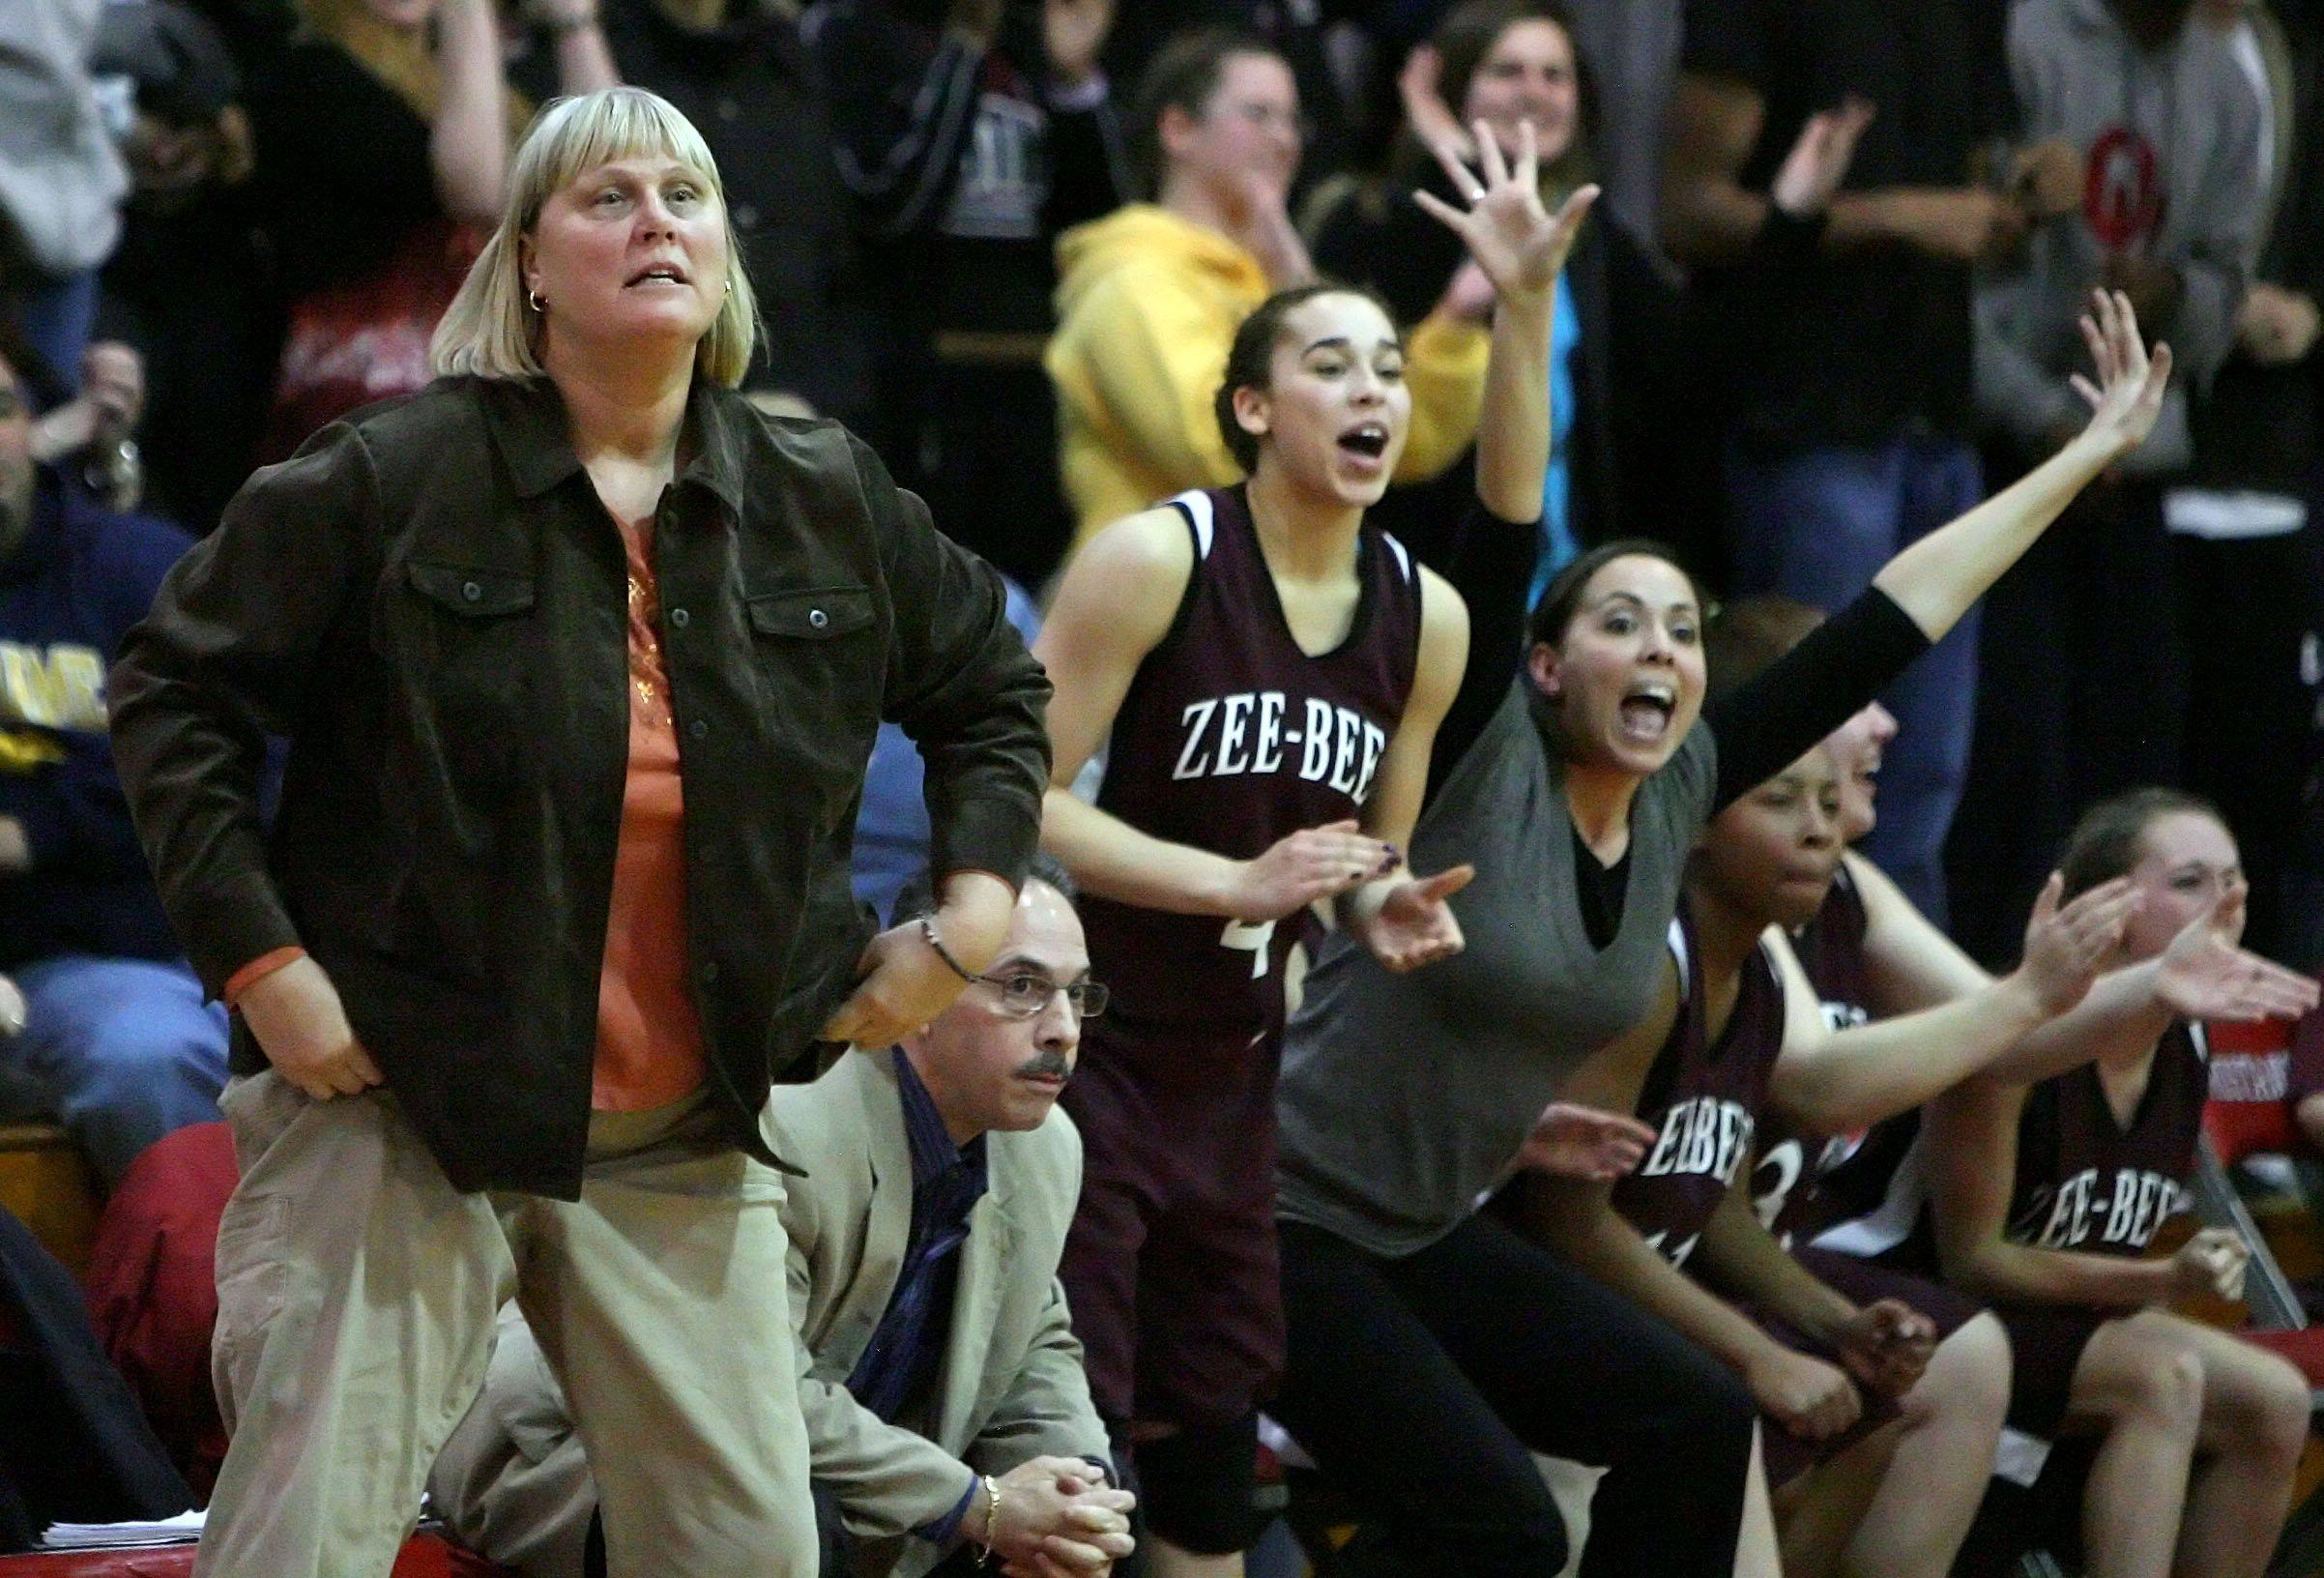 Players on the Zion-Benton bench react during their win over Libertyville.